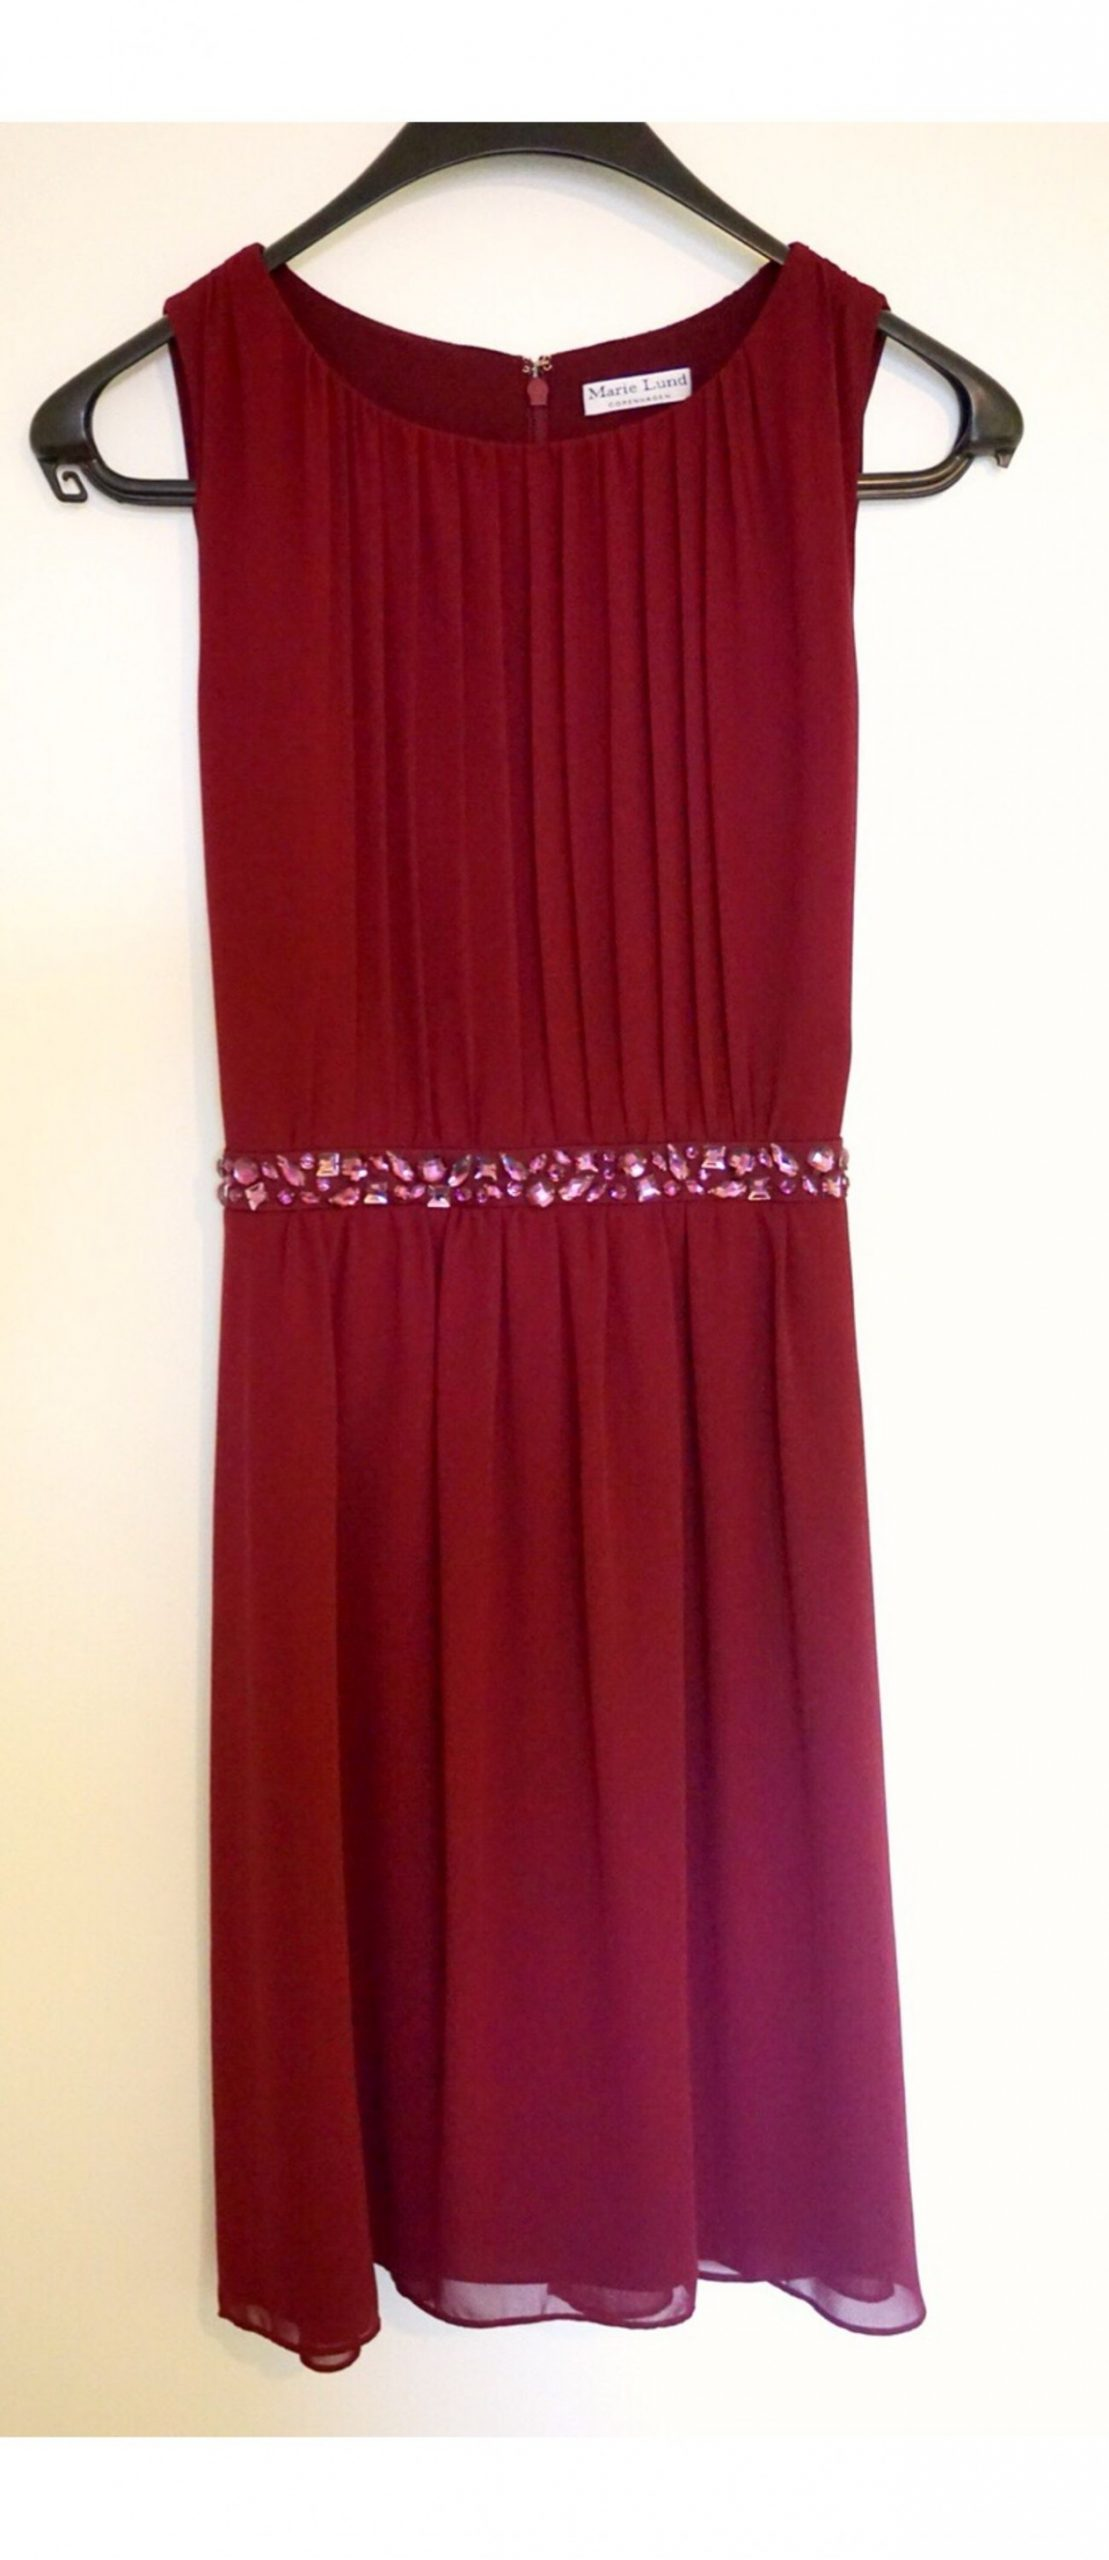 Chiffon-Kleid in weinrot in Gr. 11 in 11 Ennigerloh for €11.11